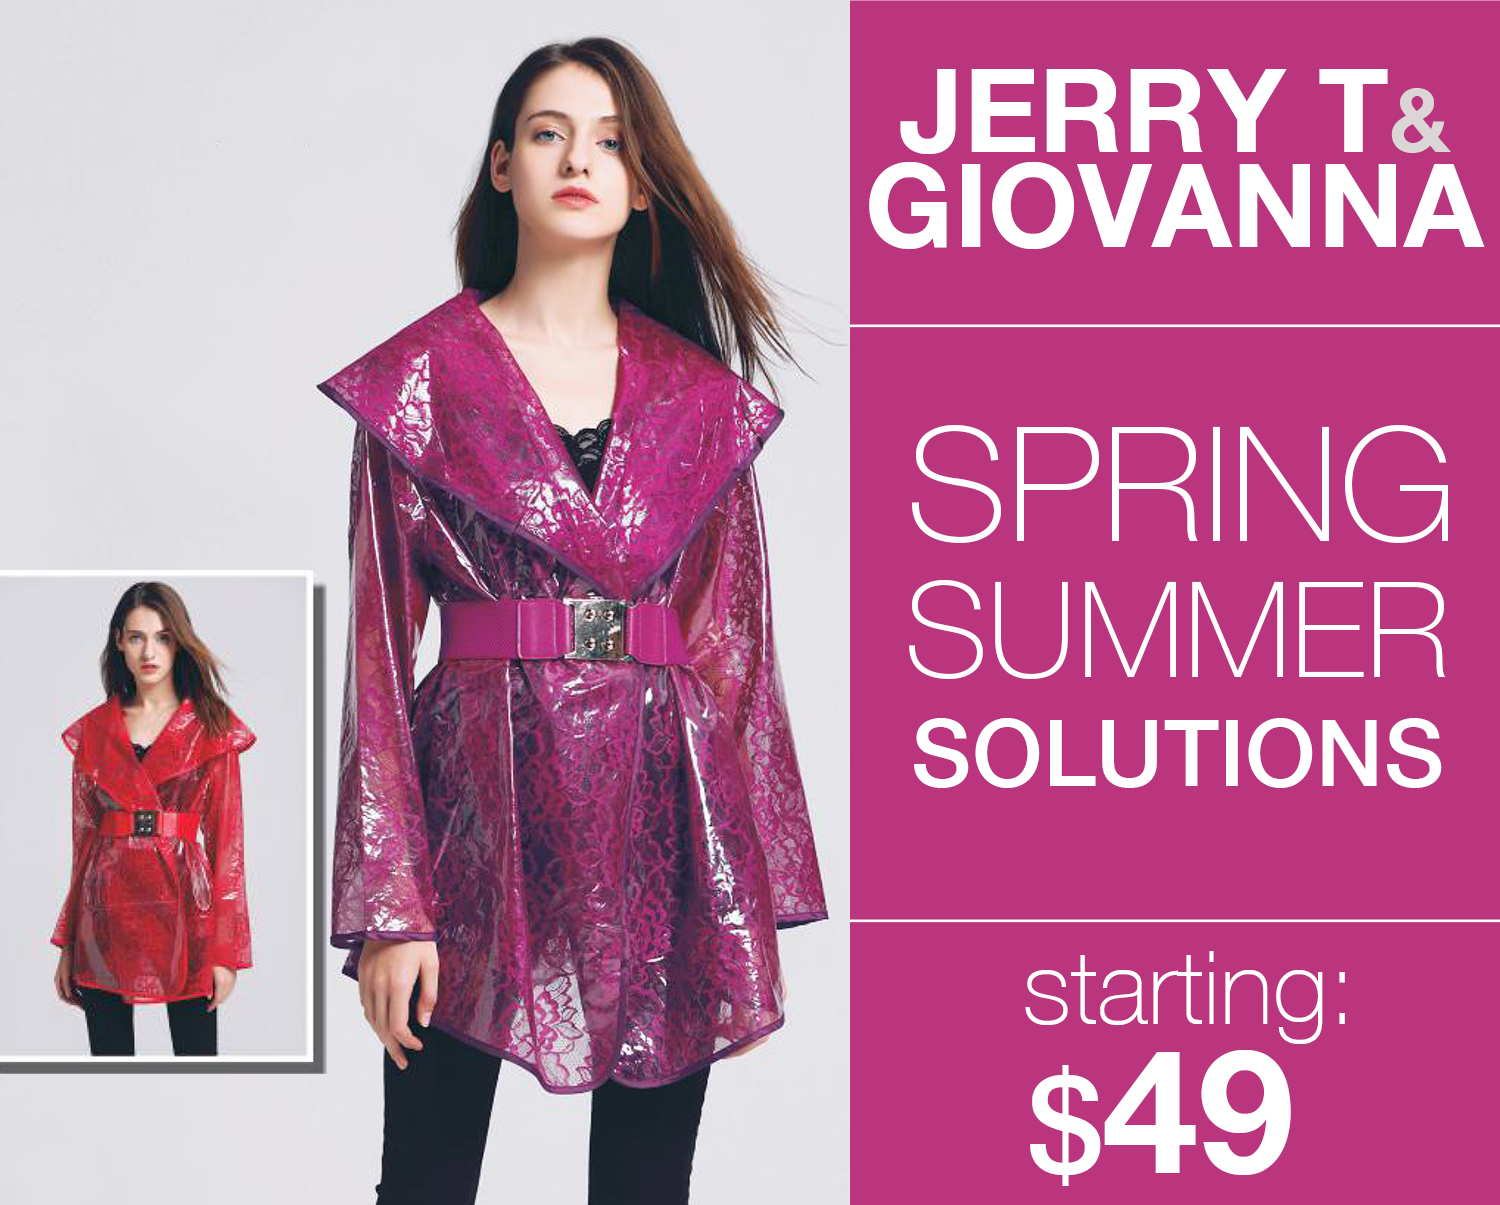 Jerry T With Giovanna High Style Fashions Fall And Holiday 2019